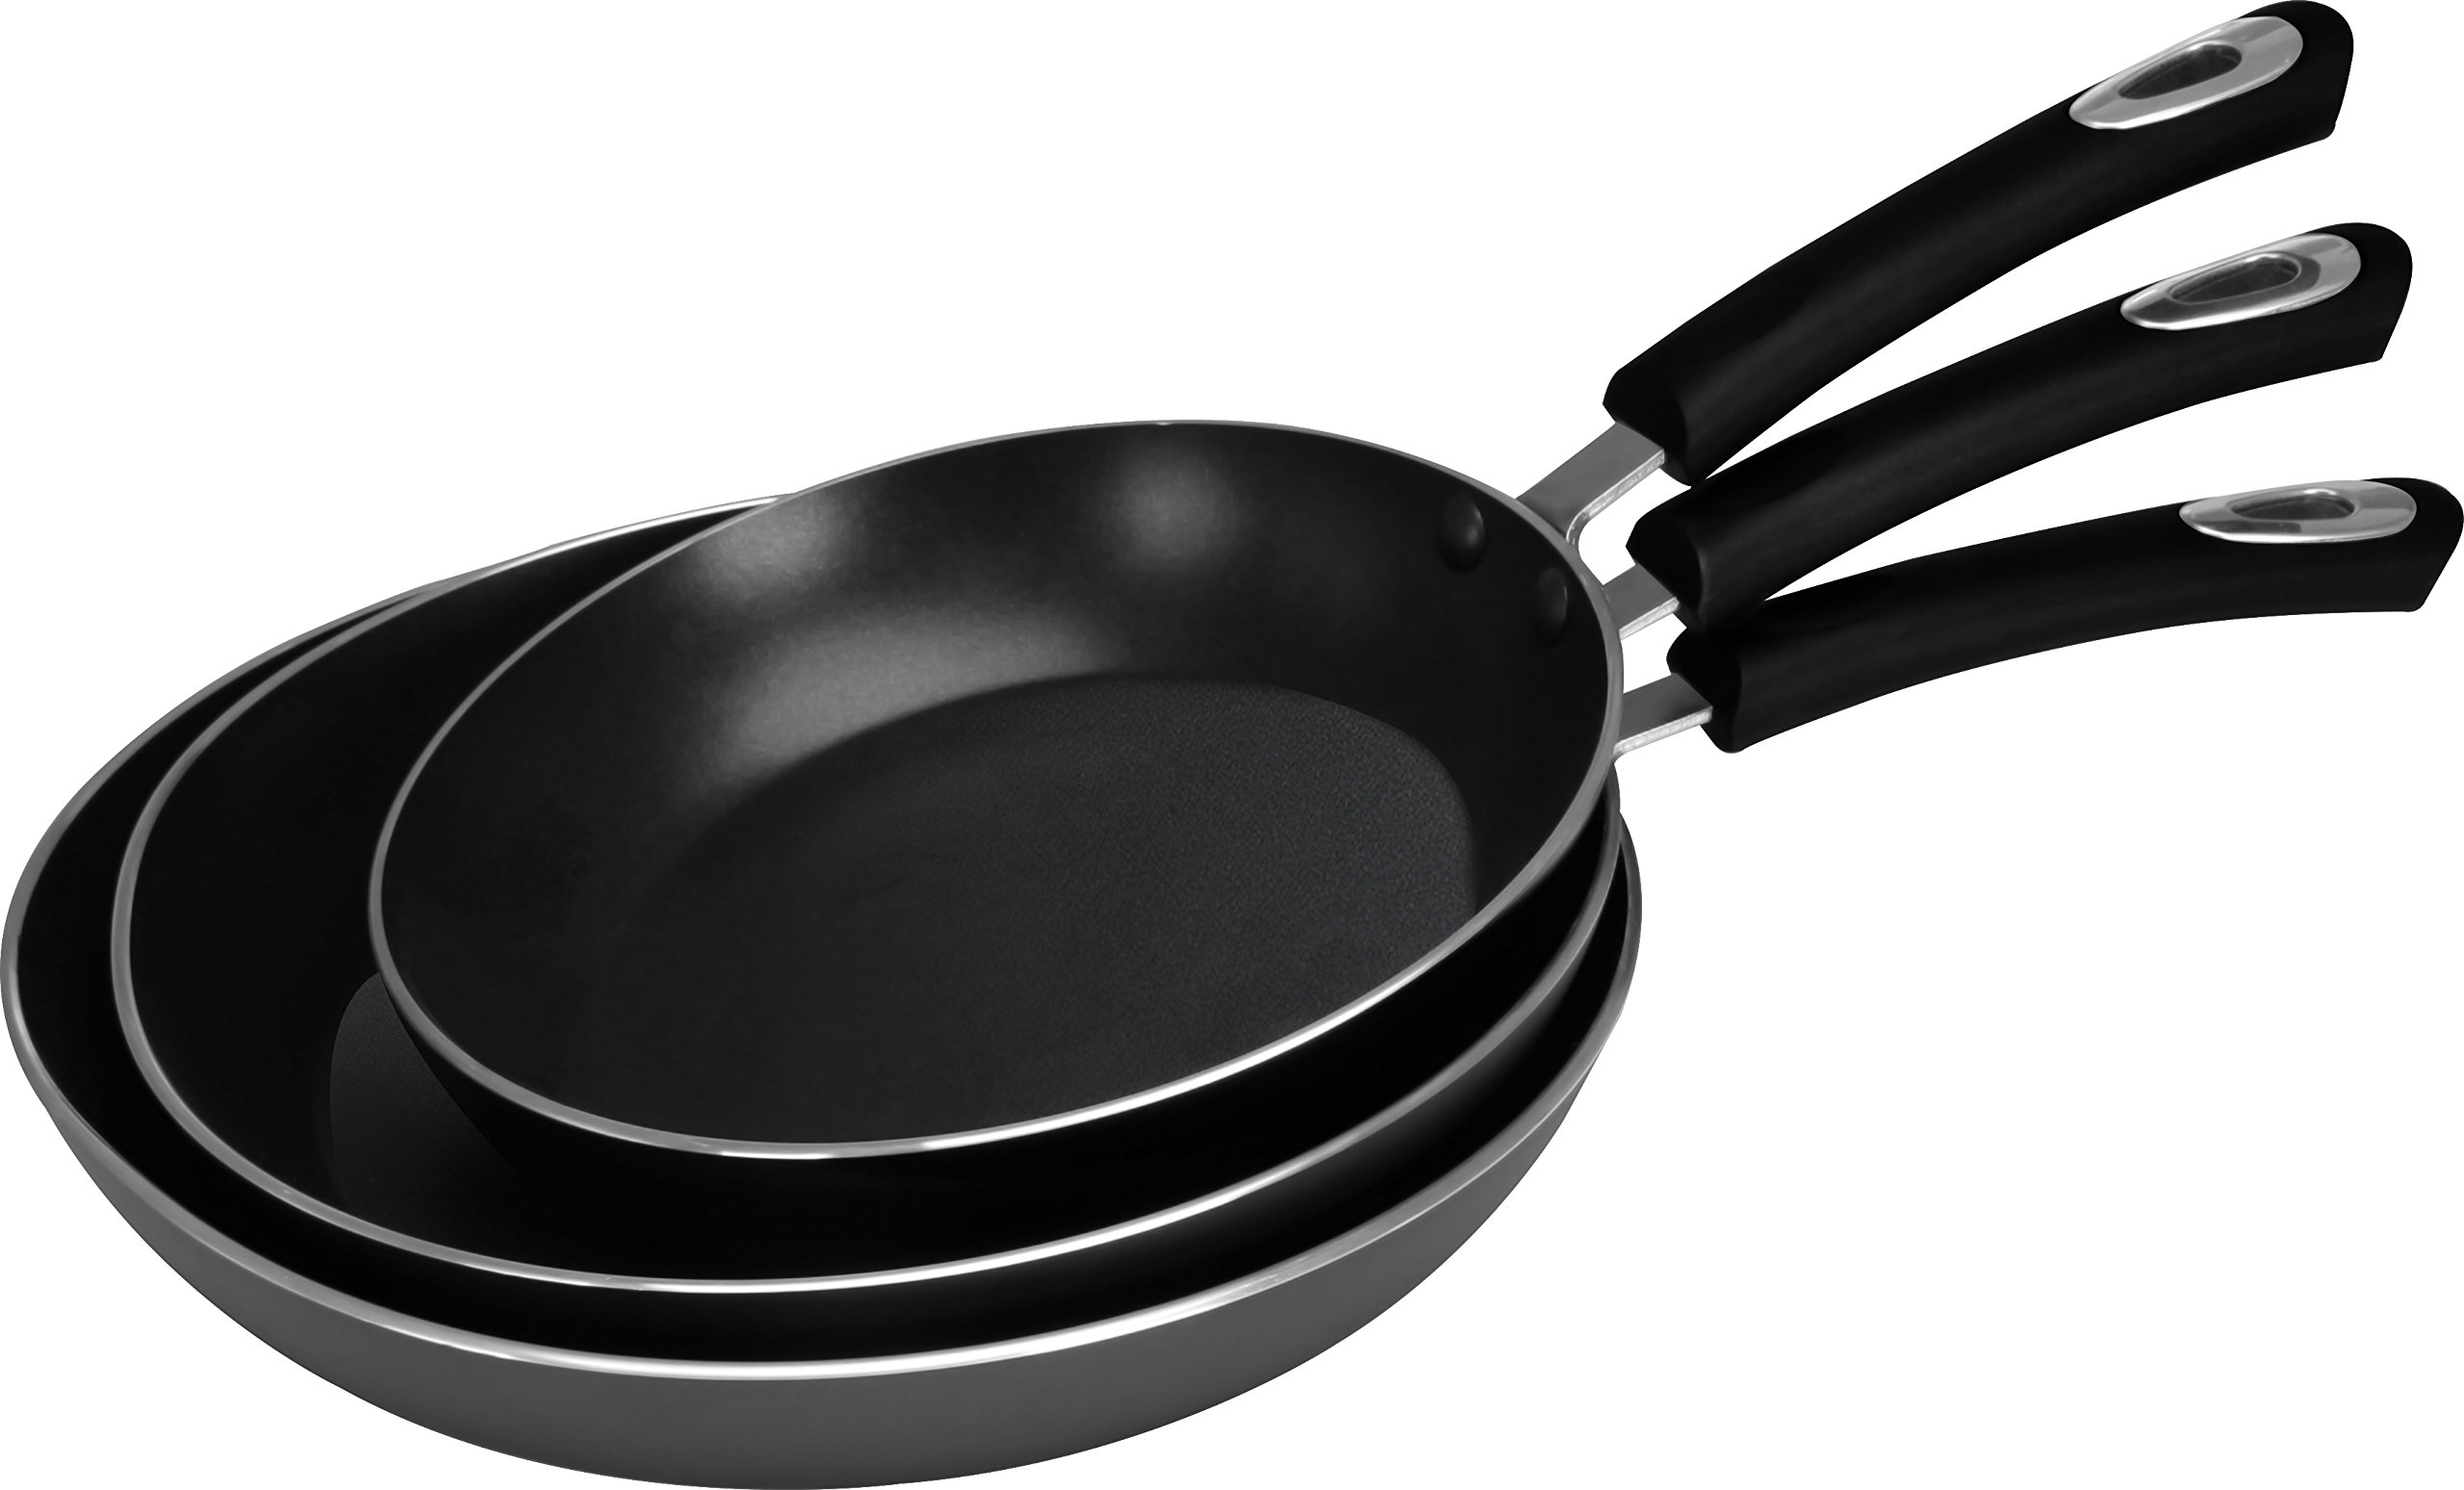 Utopia Kitchen Nonstick Frying Pan Set - 3 Piece Induction Bottom - 8 Inch, 9.5 Inch and 11 Inch by Utopia Kitchen (Image #2)